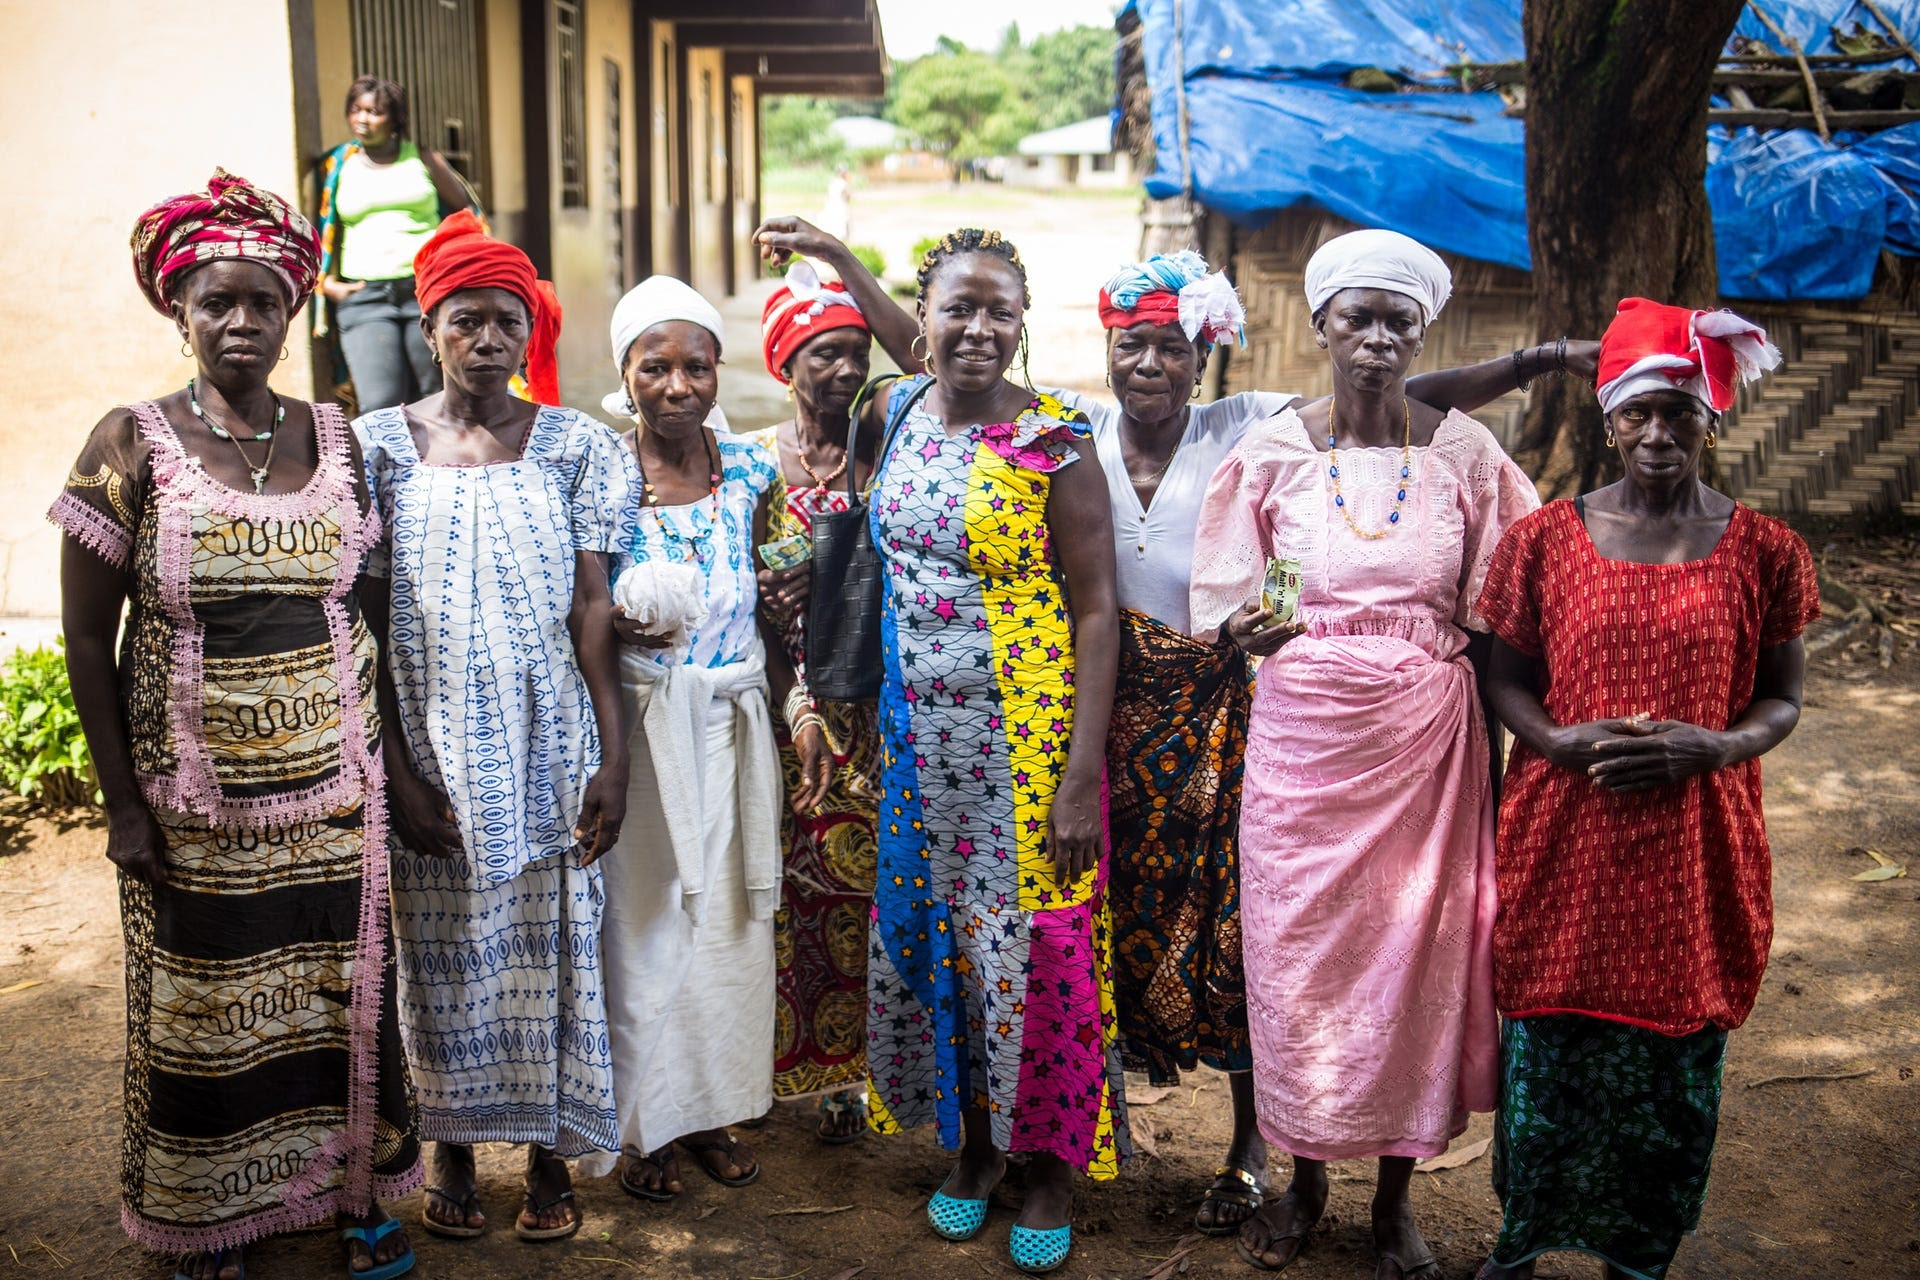 A group of soweis, the most senior women in the Bondo secret societies. The chiefdoms head sowei, seen here wearing a pink dress, is Jeanette Bangura. In the centre, wearing a yellow and blue dress, is Ann-Marie Caulker, an anti-FGM campaigner.